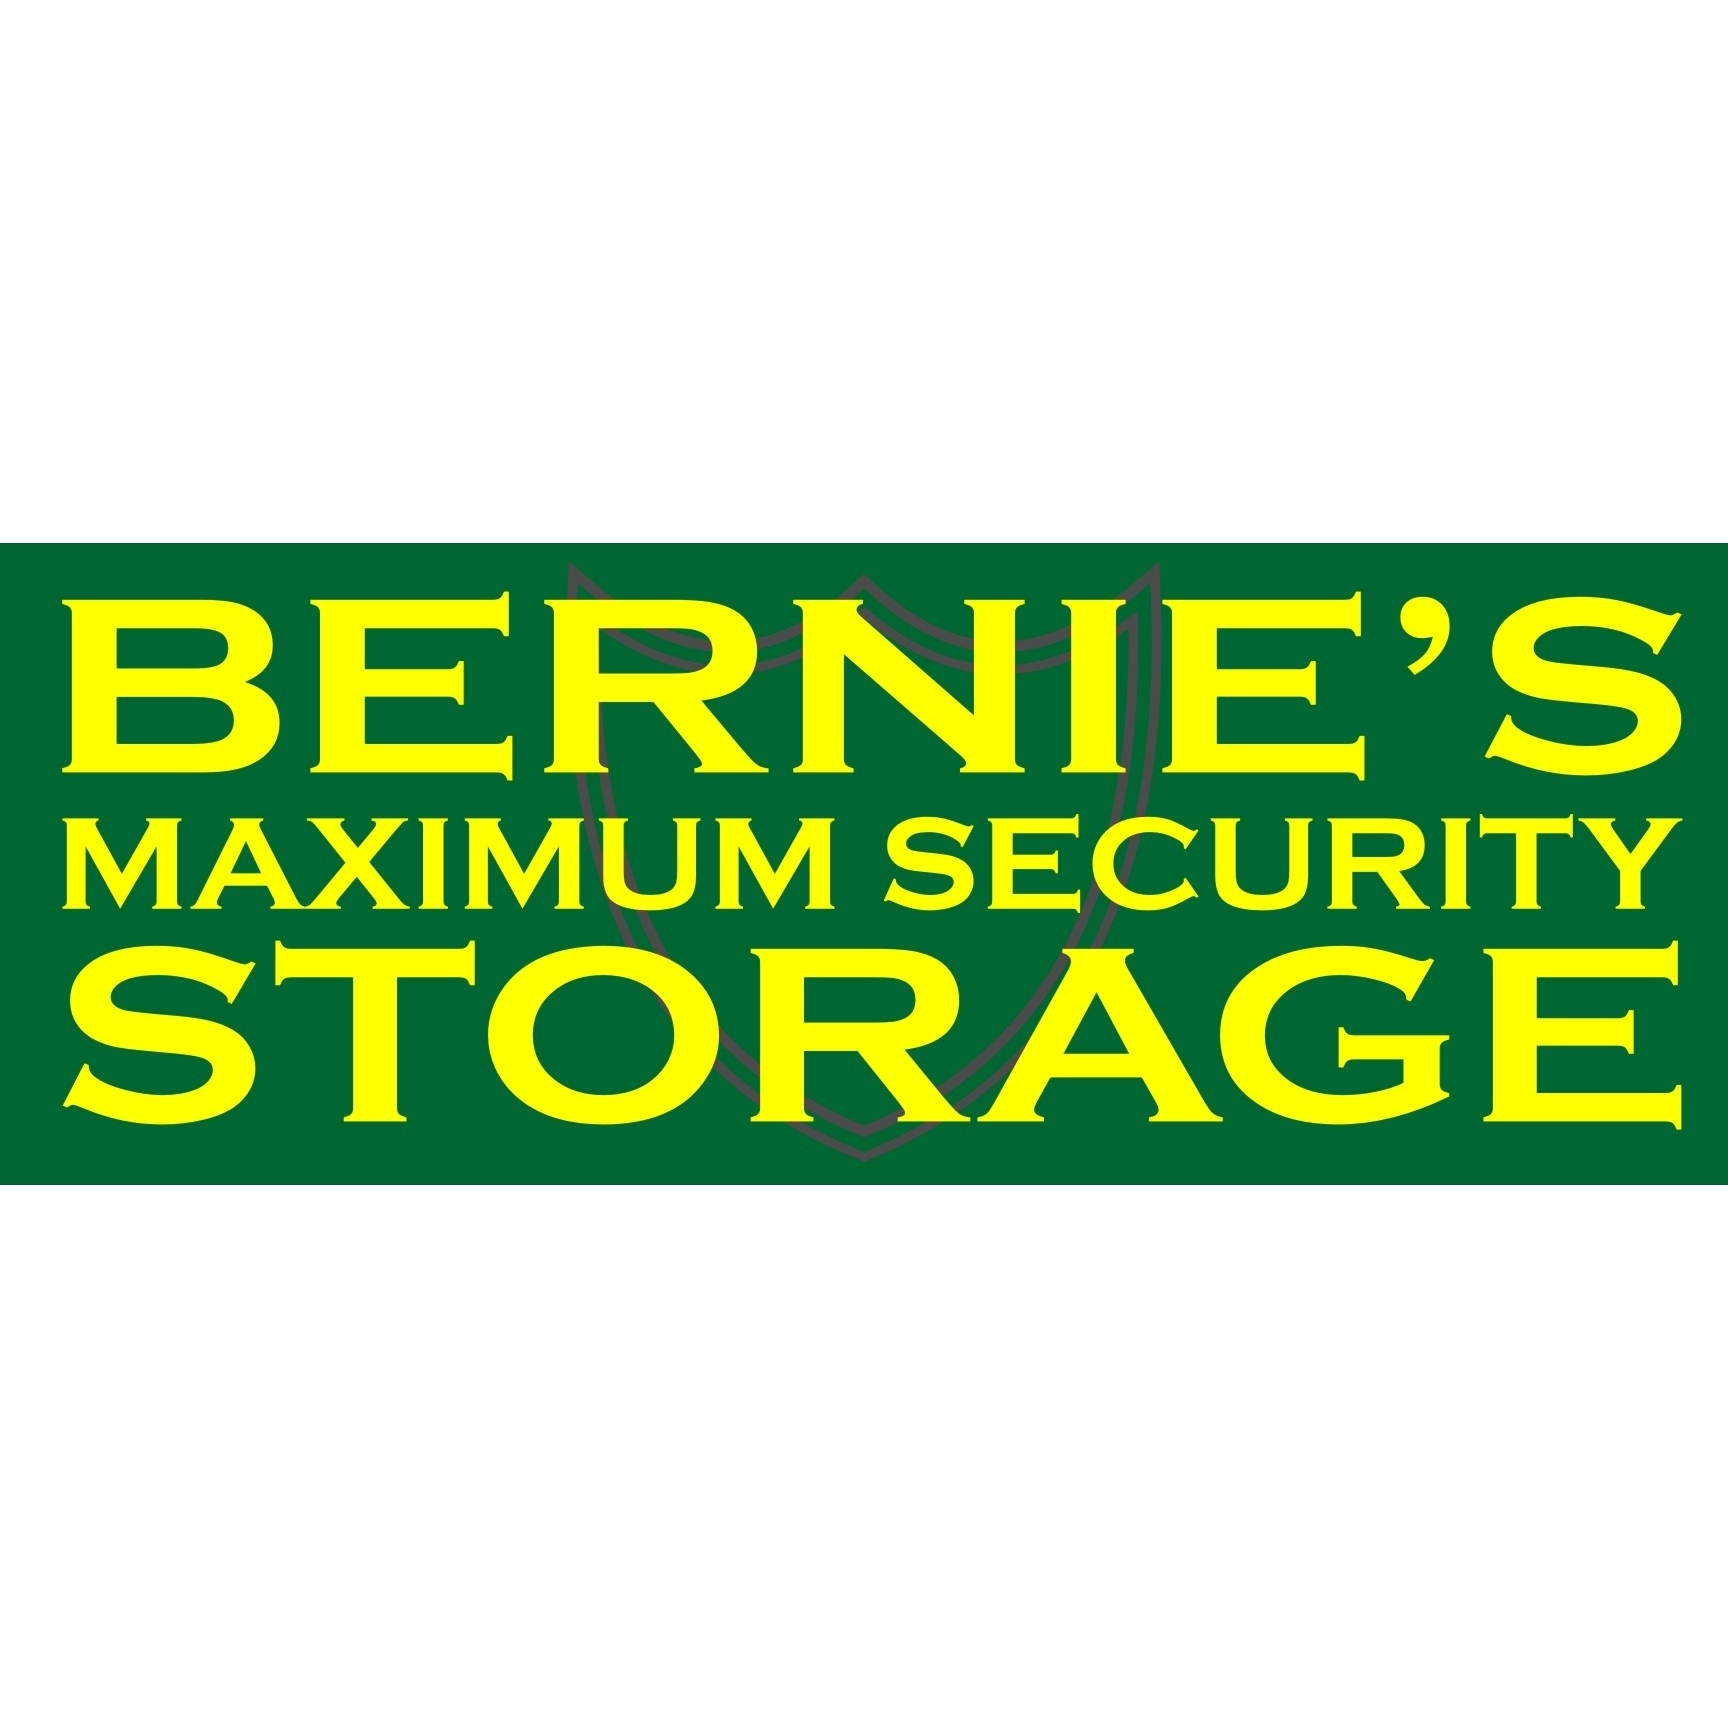 Bernie's Maximum Security Storage